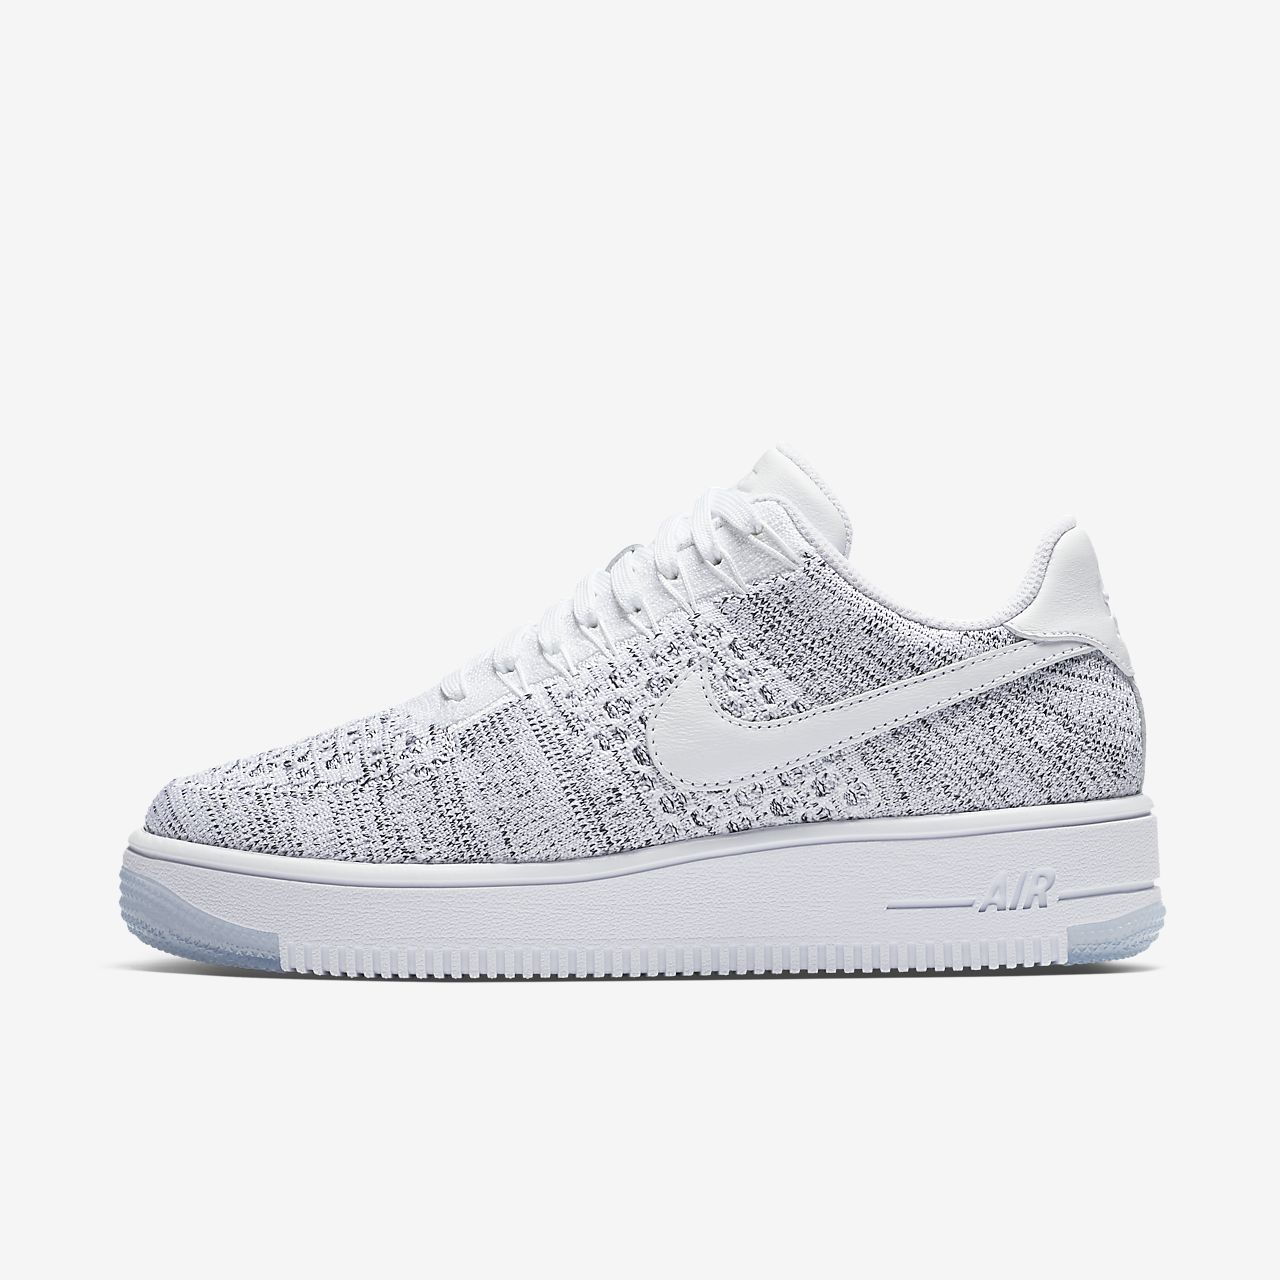 air force 1 fly knit nz